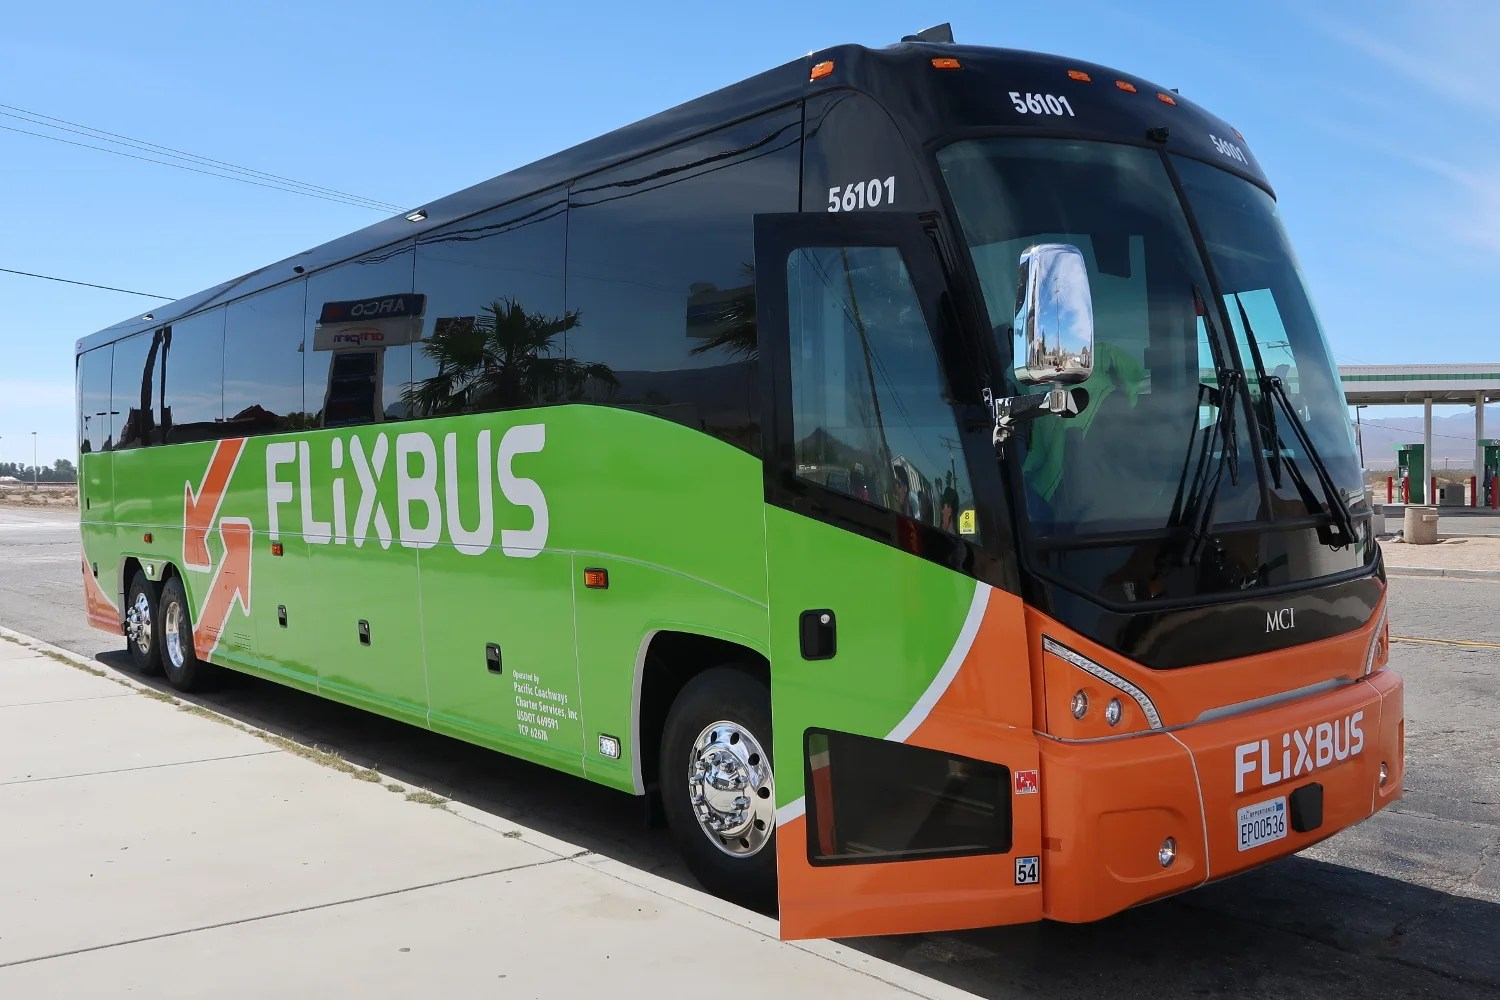 You can travel between NYC and D.C. for just 99 cents with new FlixBus promotion